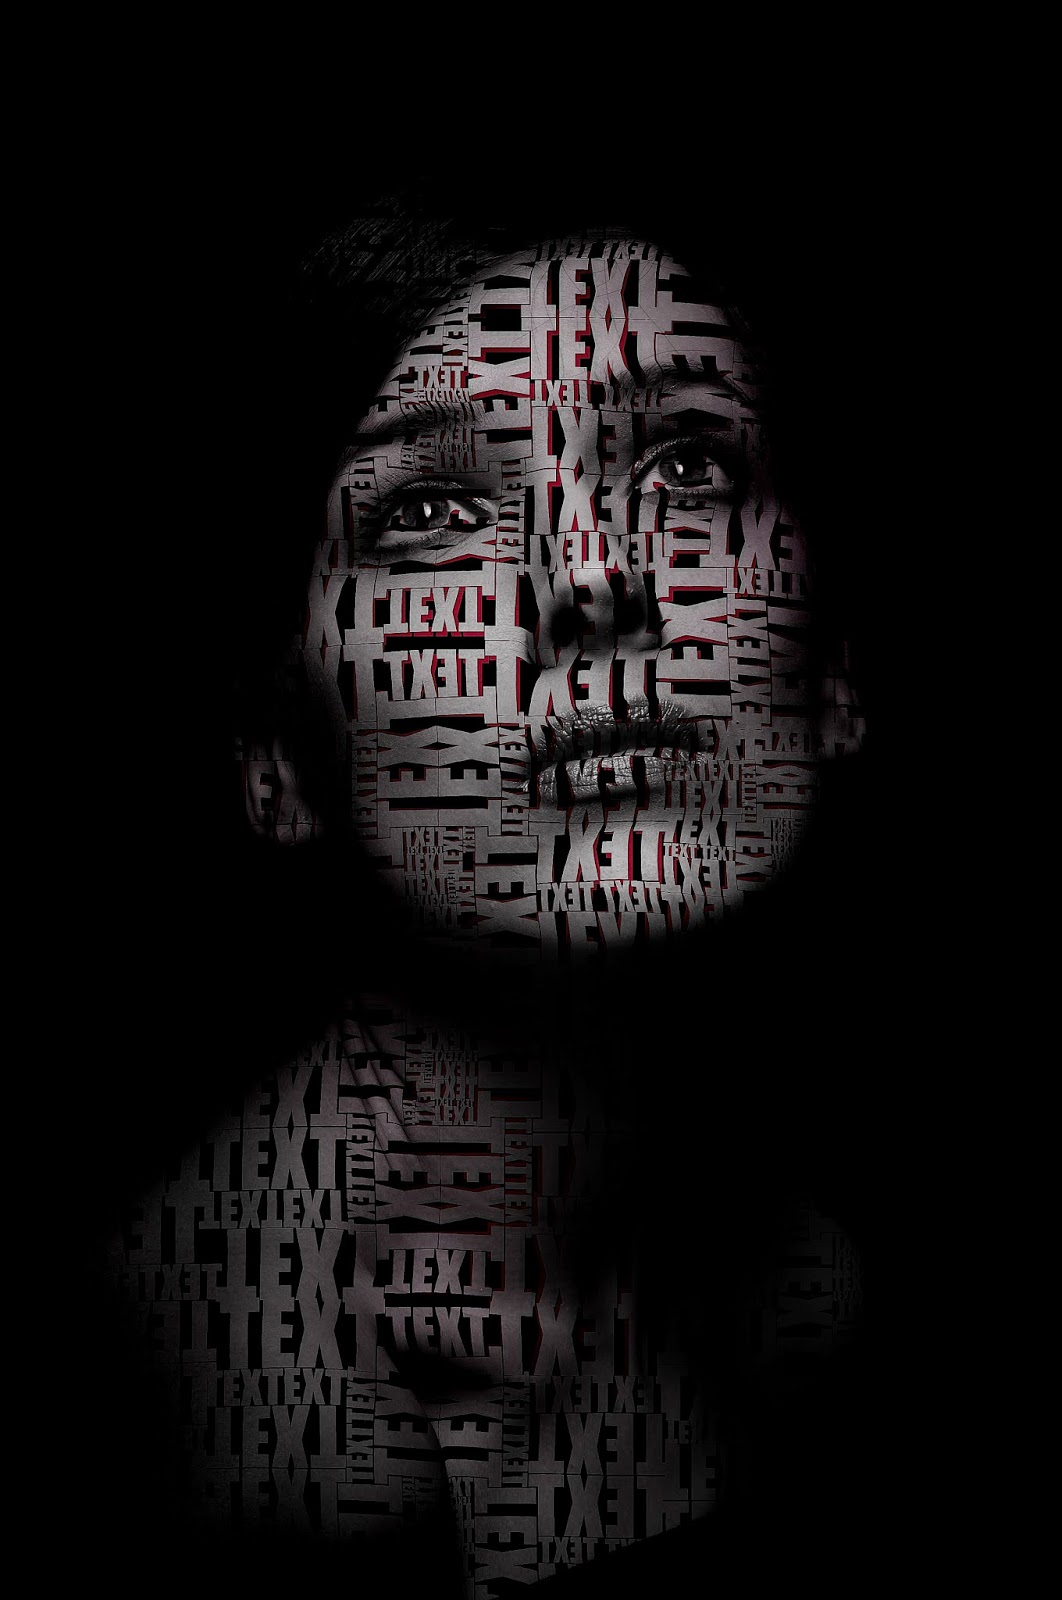 Transform a picture into a cool Text portrait — Photoshop Tutorial